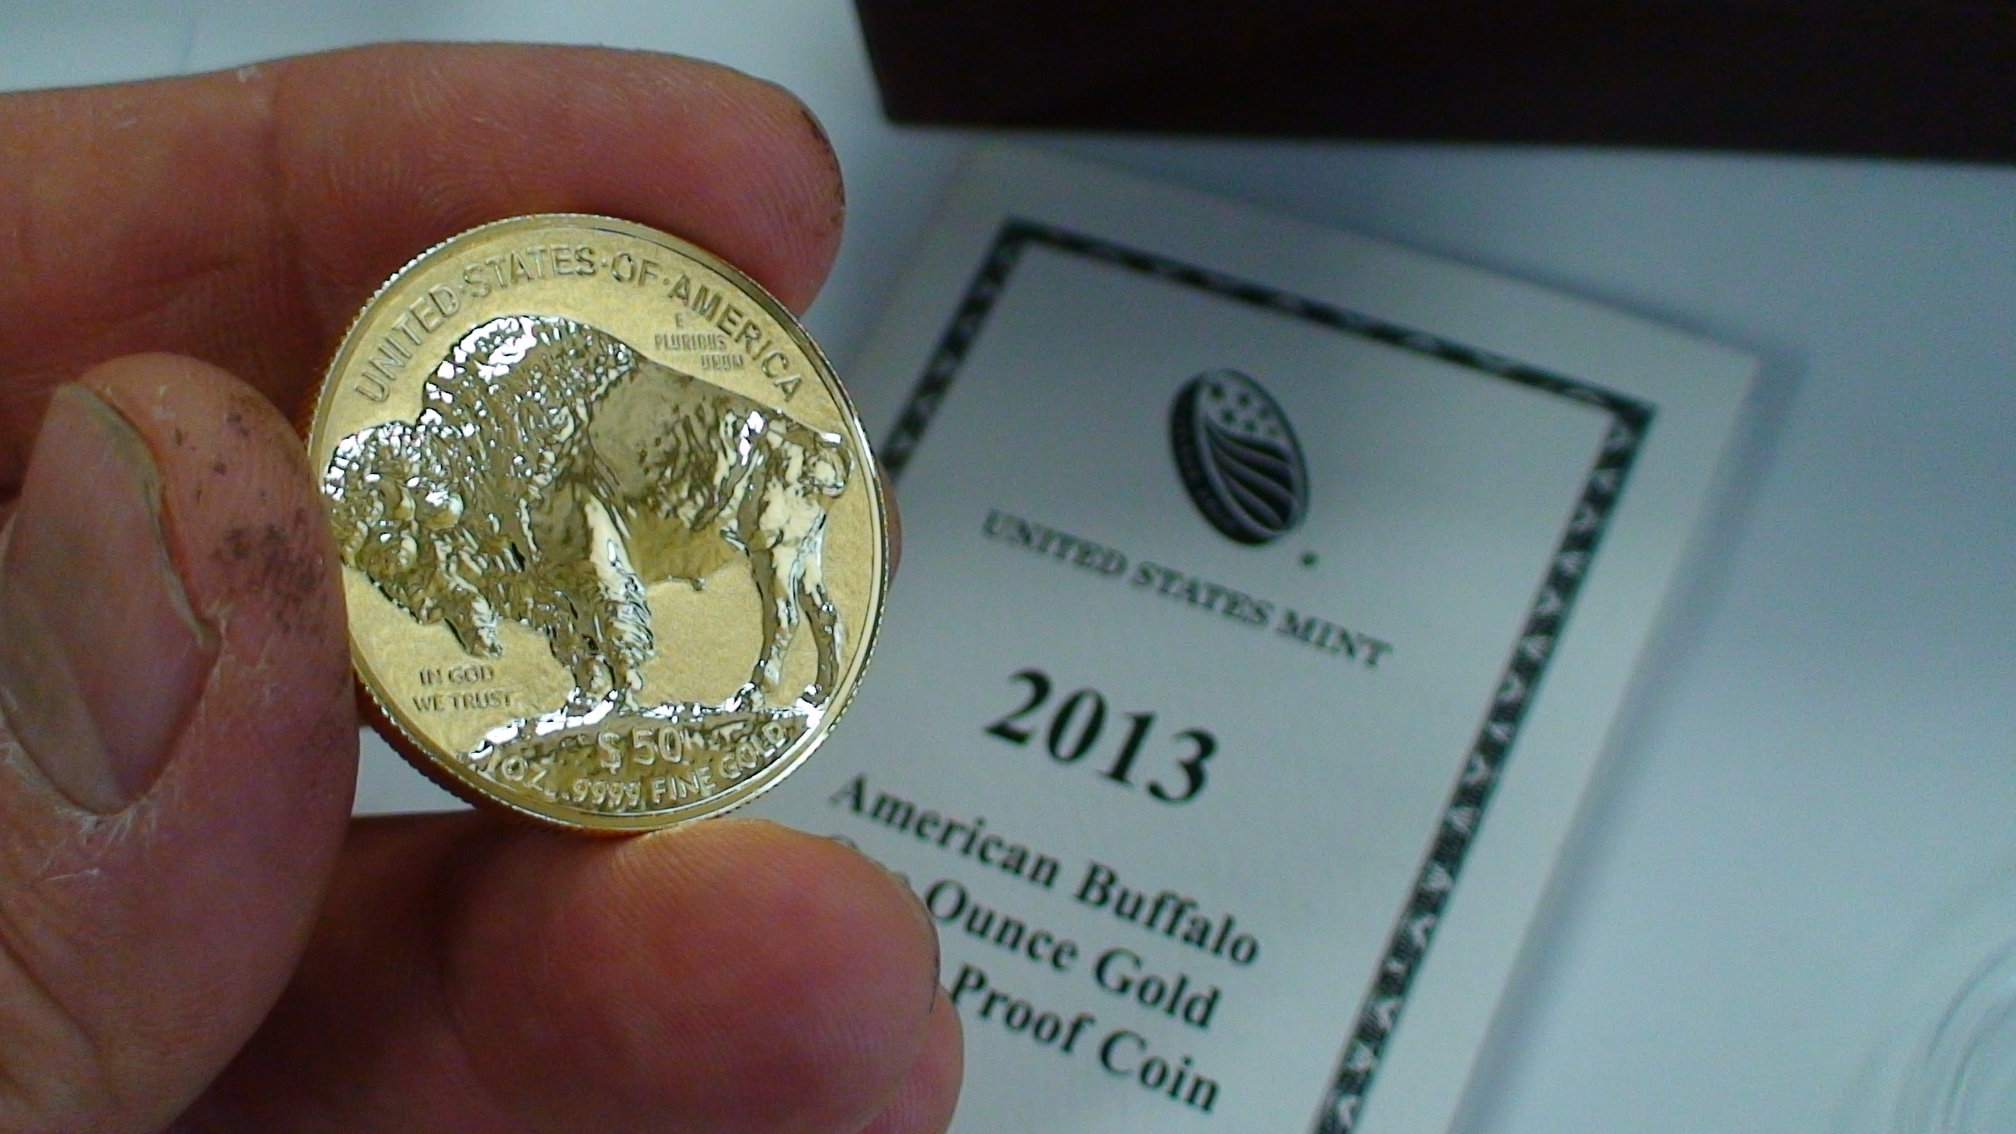 American Buffalo Gold Coin Reverse Proof